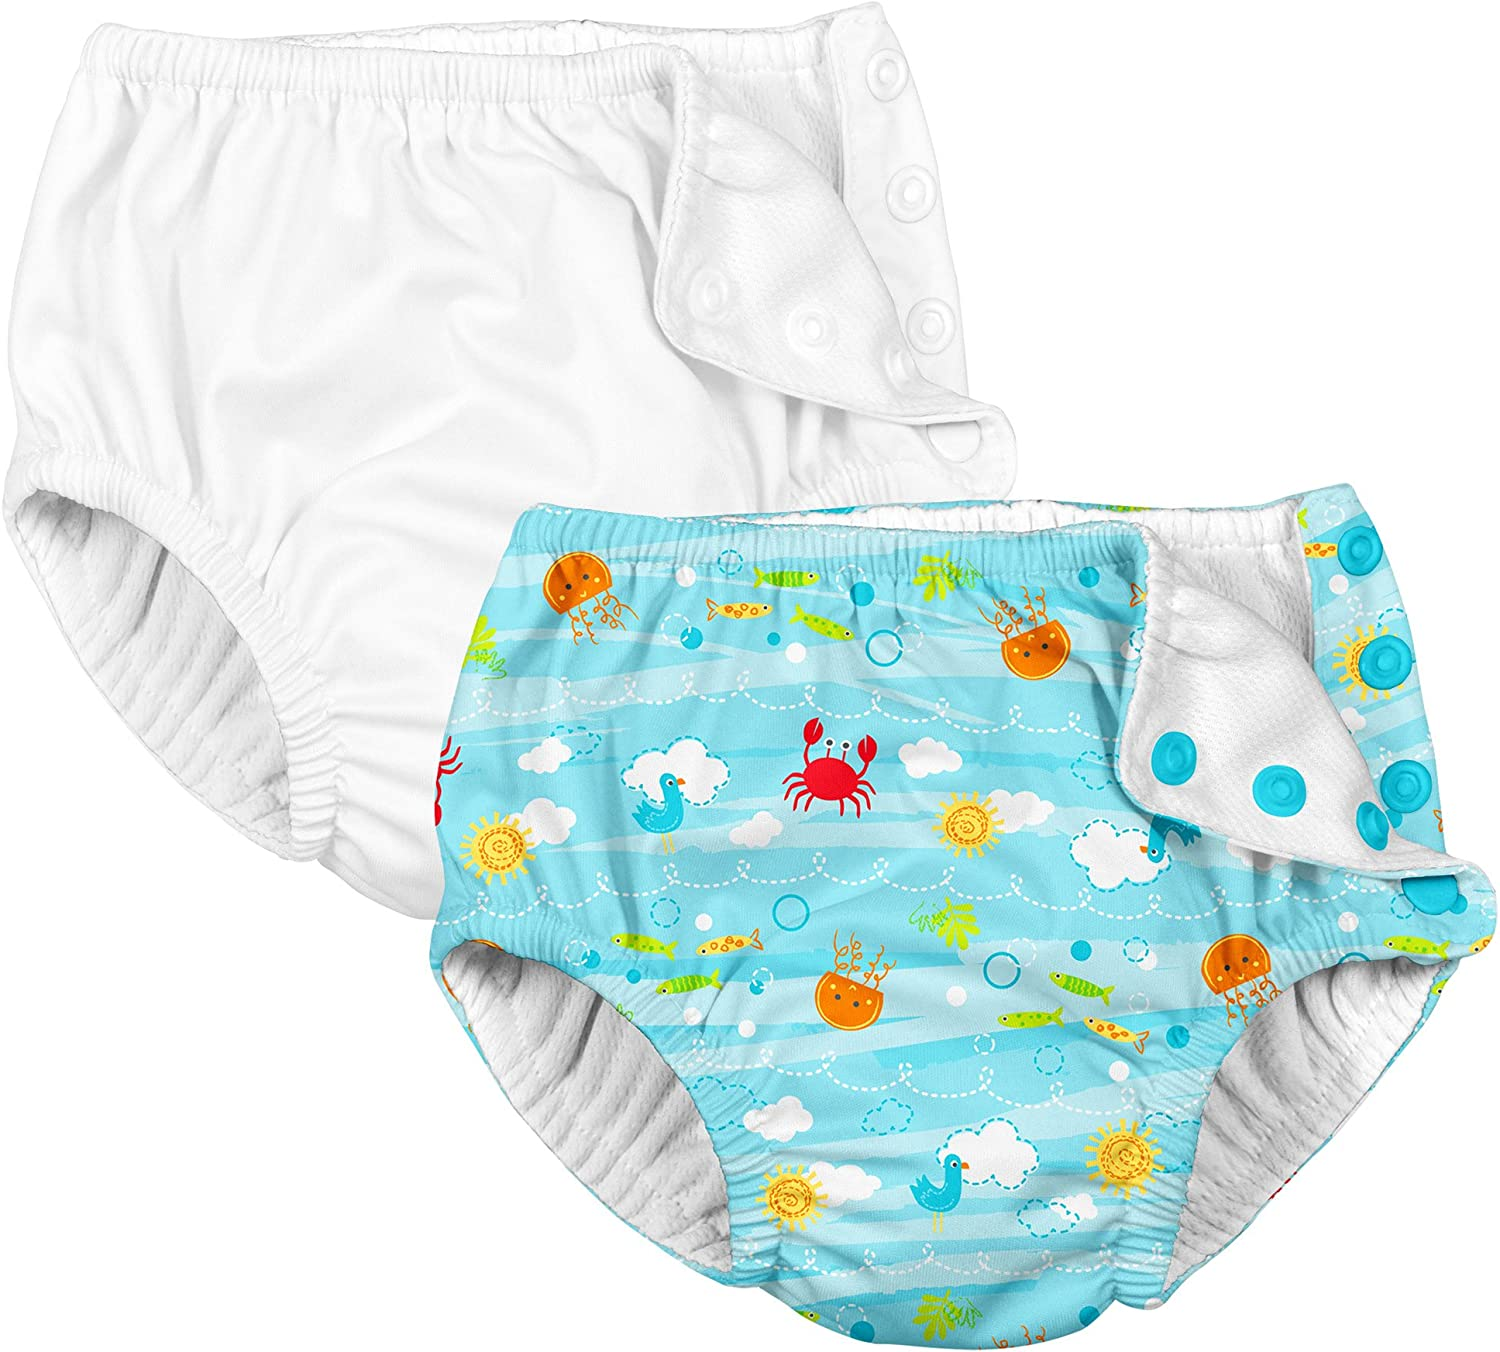 by green sprouts Pull-up Reusable Swim Diaper i play